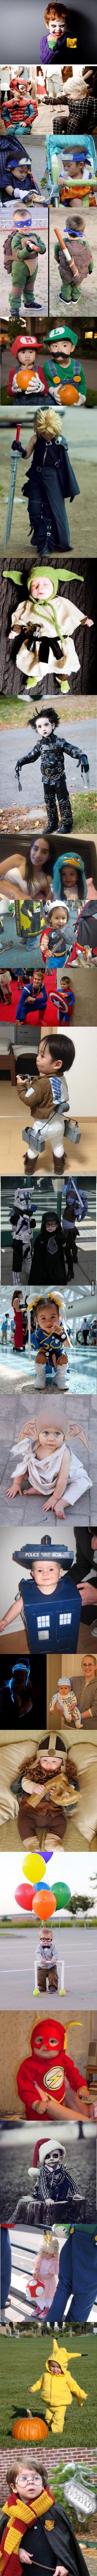 Geeky Parents Turn Their Kids Into Movie And Anime Characters  Who Will Melt Your Heart. THIS IS SO CUTE!!!!!!!